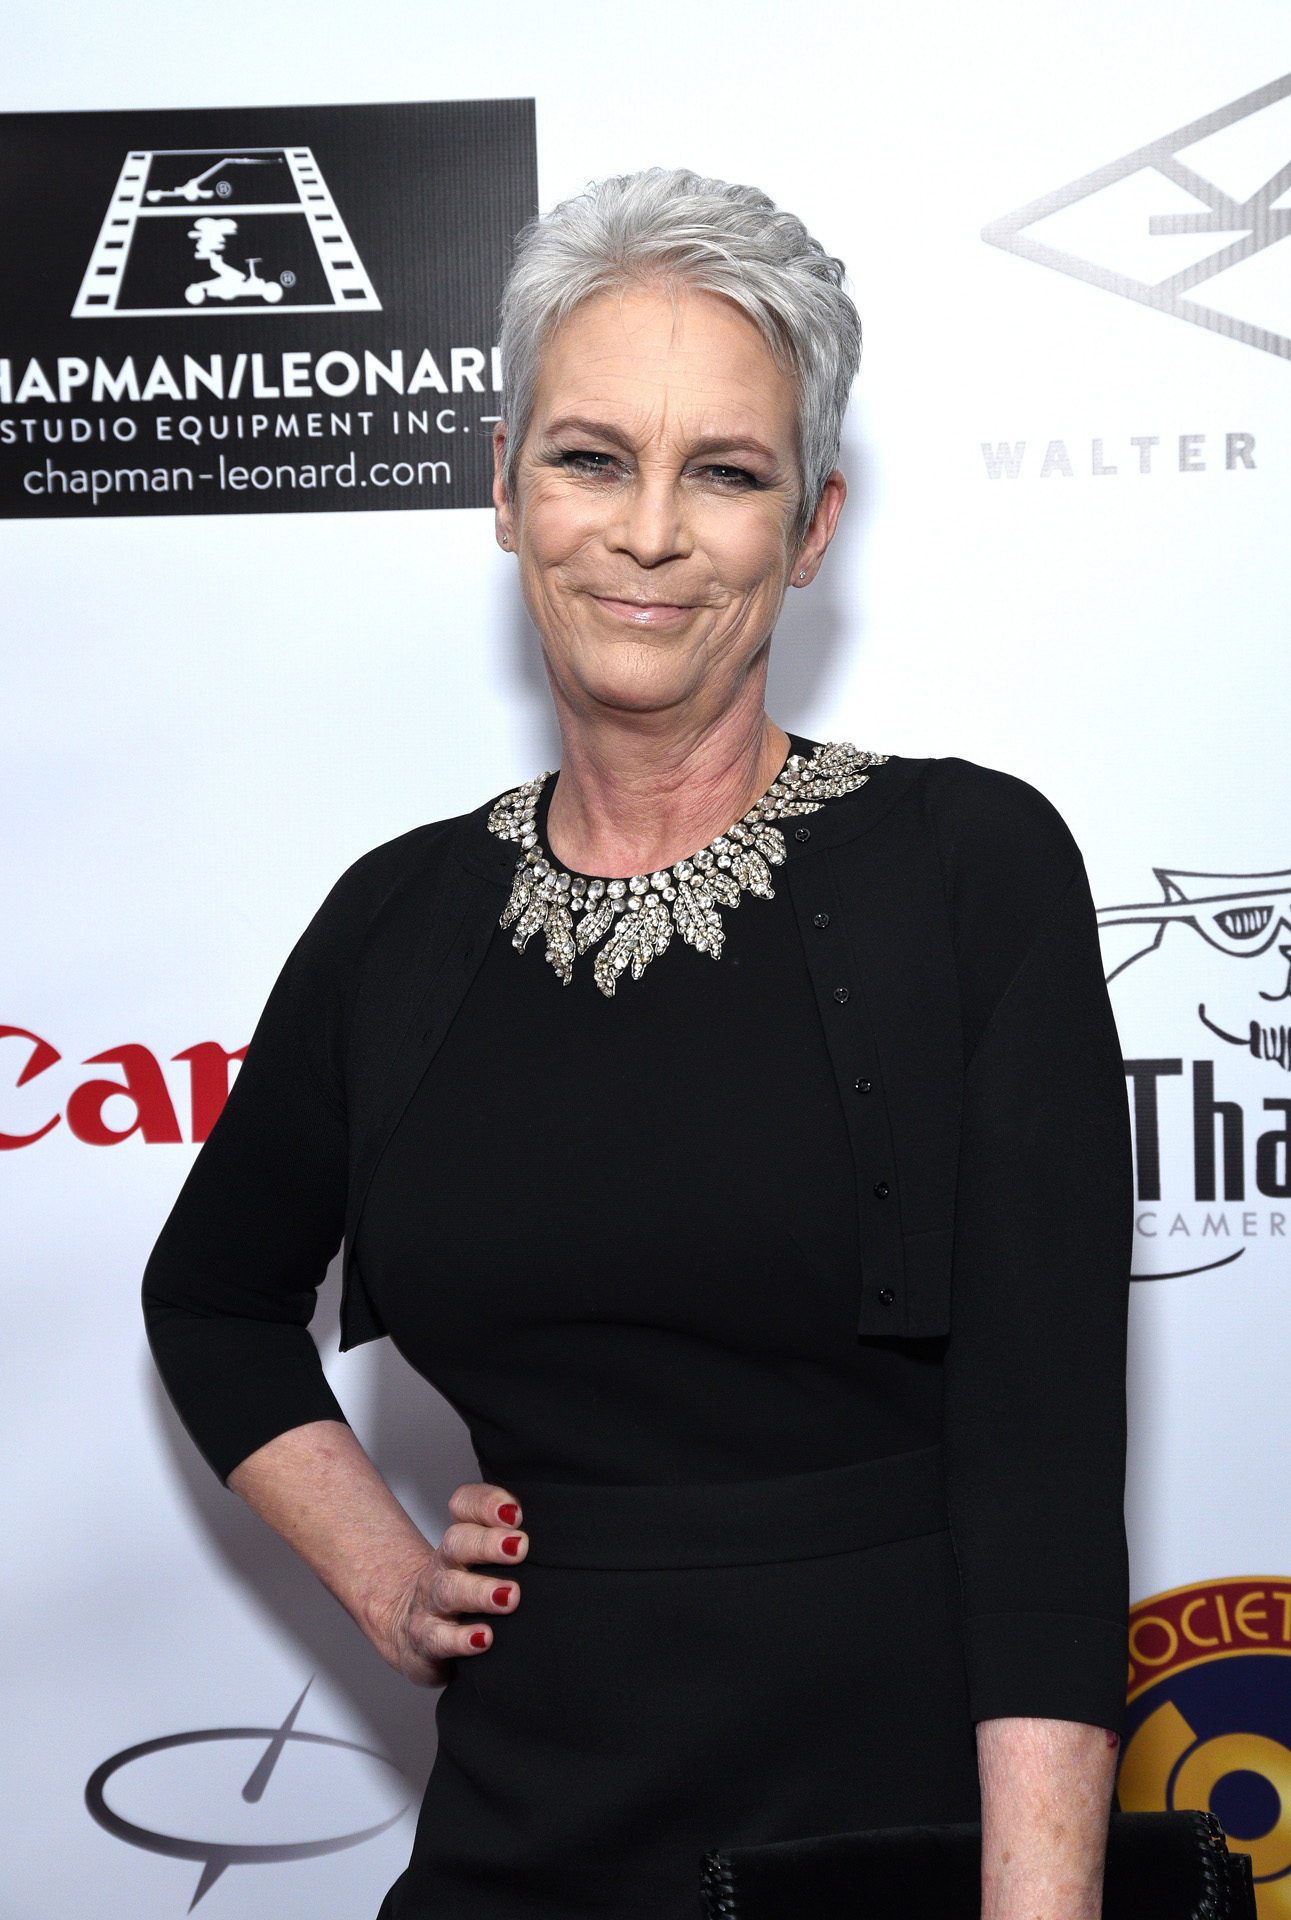 HOLLYWOOD, CALIFORNIA - JANUARY 18: Actress Jamie Lee Curtis attends the Society of Camera Operators Lifetime Achievement Awards 2020 at Loews Hollywood Hotel on January 18, 2020 in Hollywood, California. Michael Tullberg/Getty Images/AFP